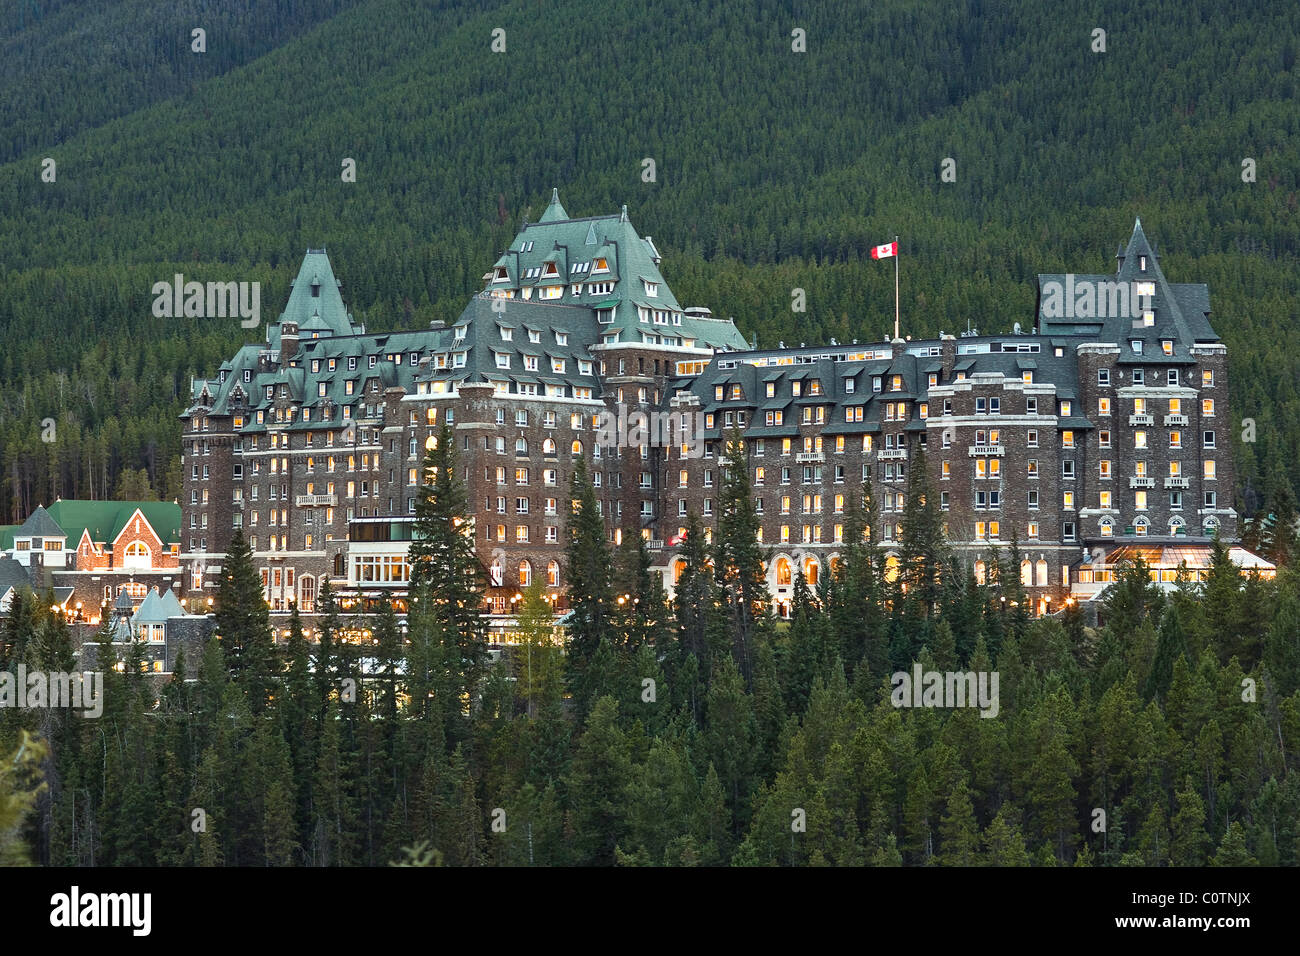 Nuit à l'hôtel Banff Springs, Banff National Park, Alberta, Canada. Photo Stock